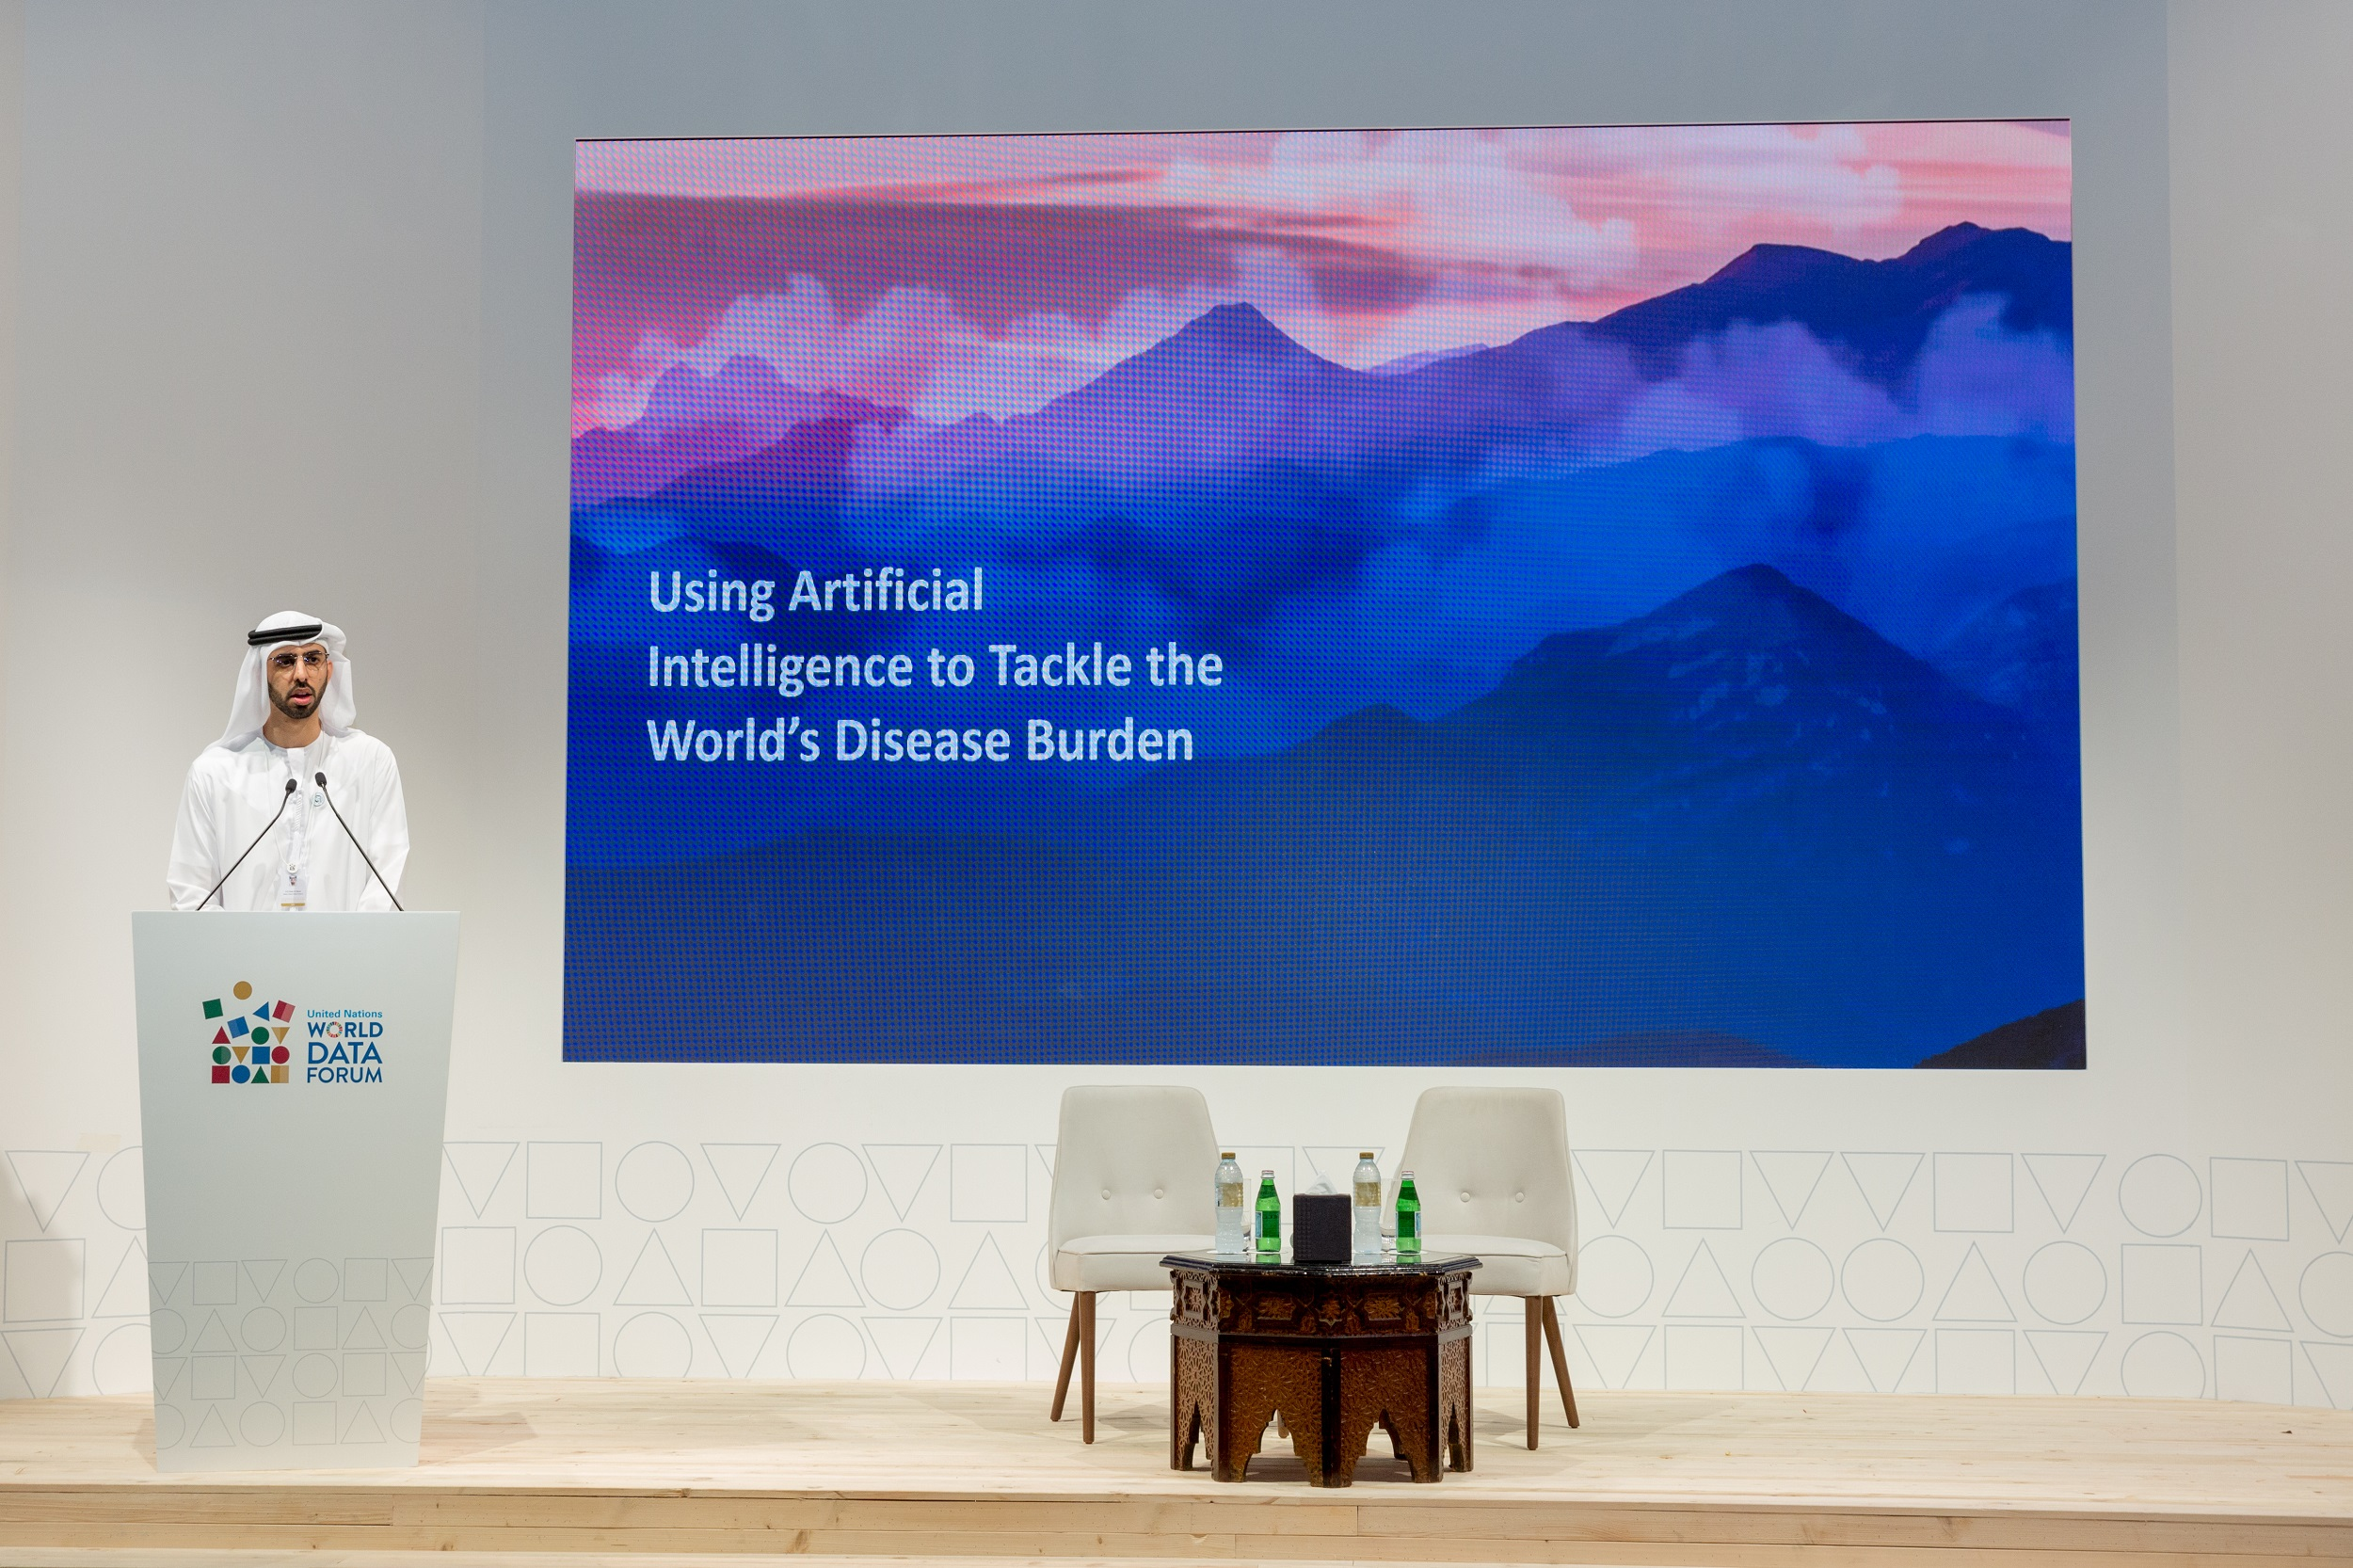 'Artificial Intelligence Could Eradicate Tuberculosis,' UAE Minister of State for AI Tells Audience at UN World Data Forum 2018